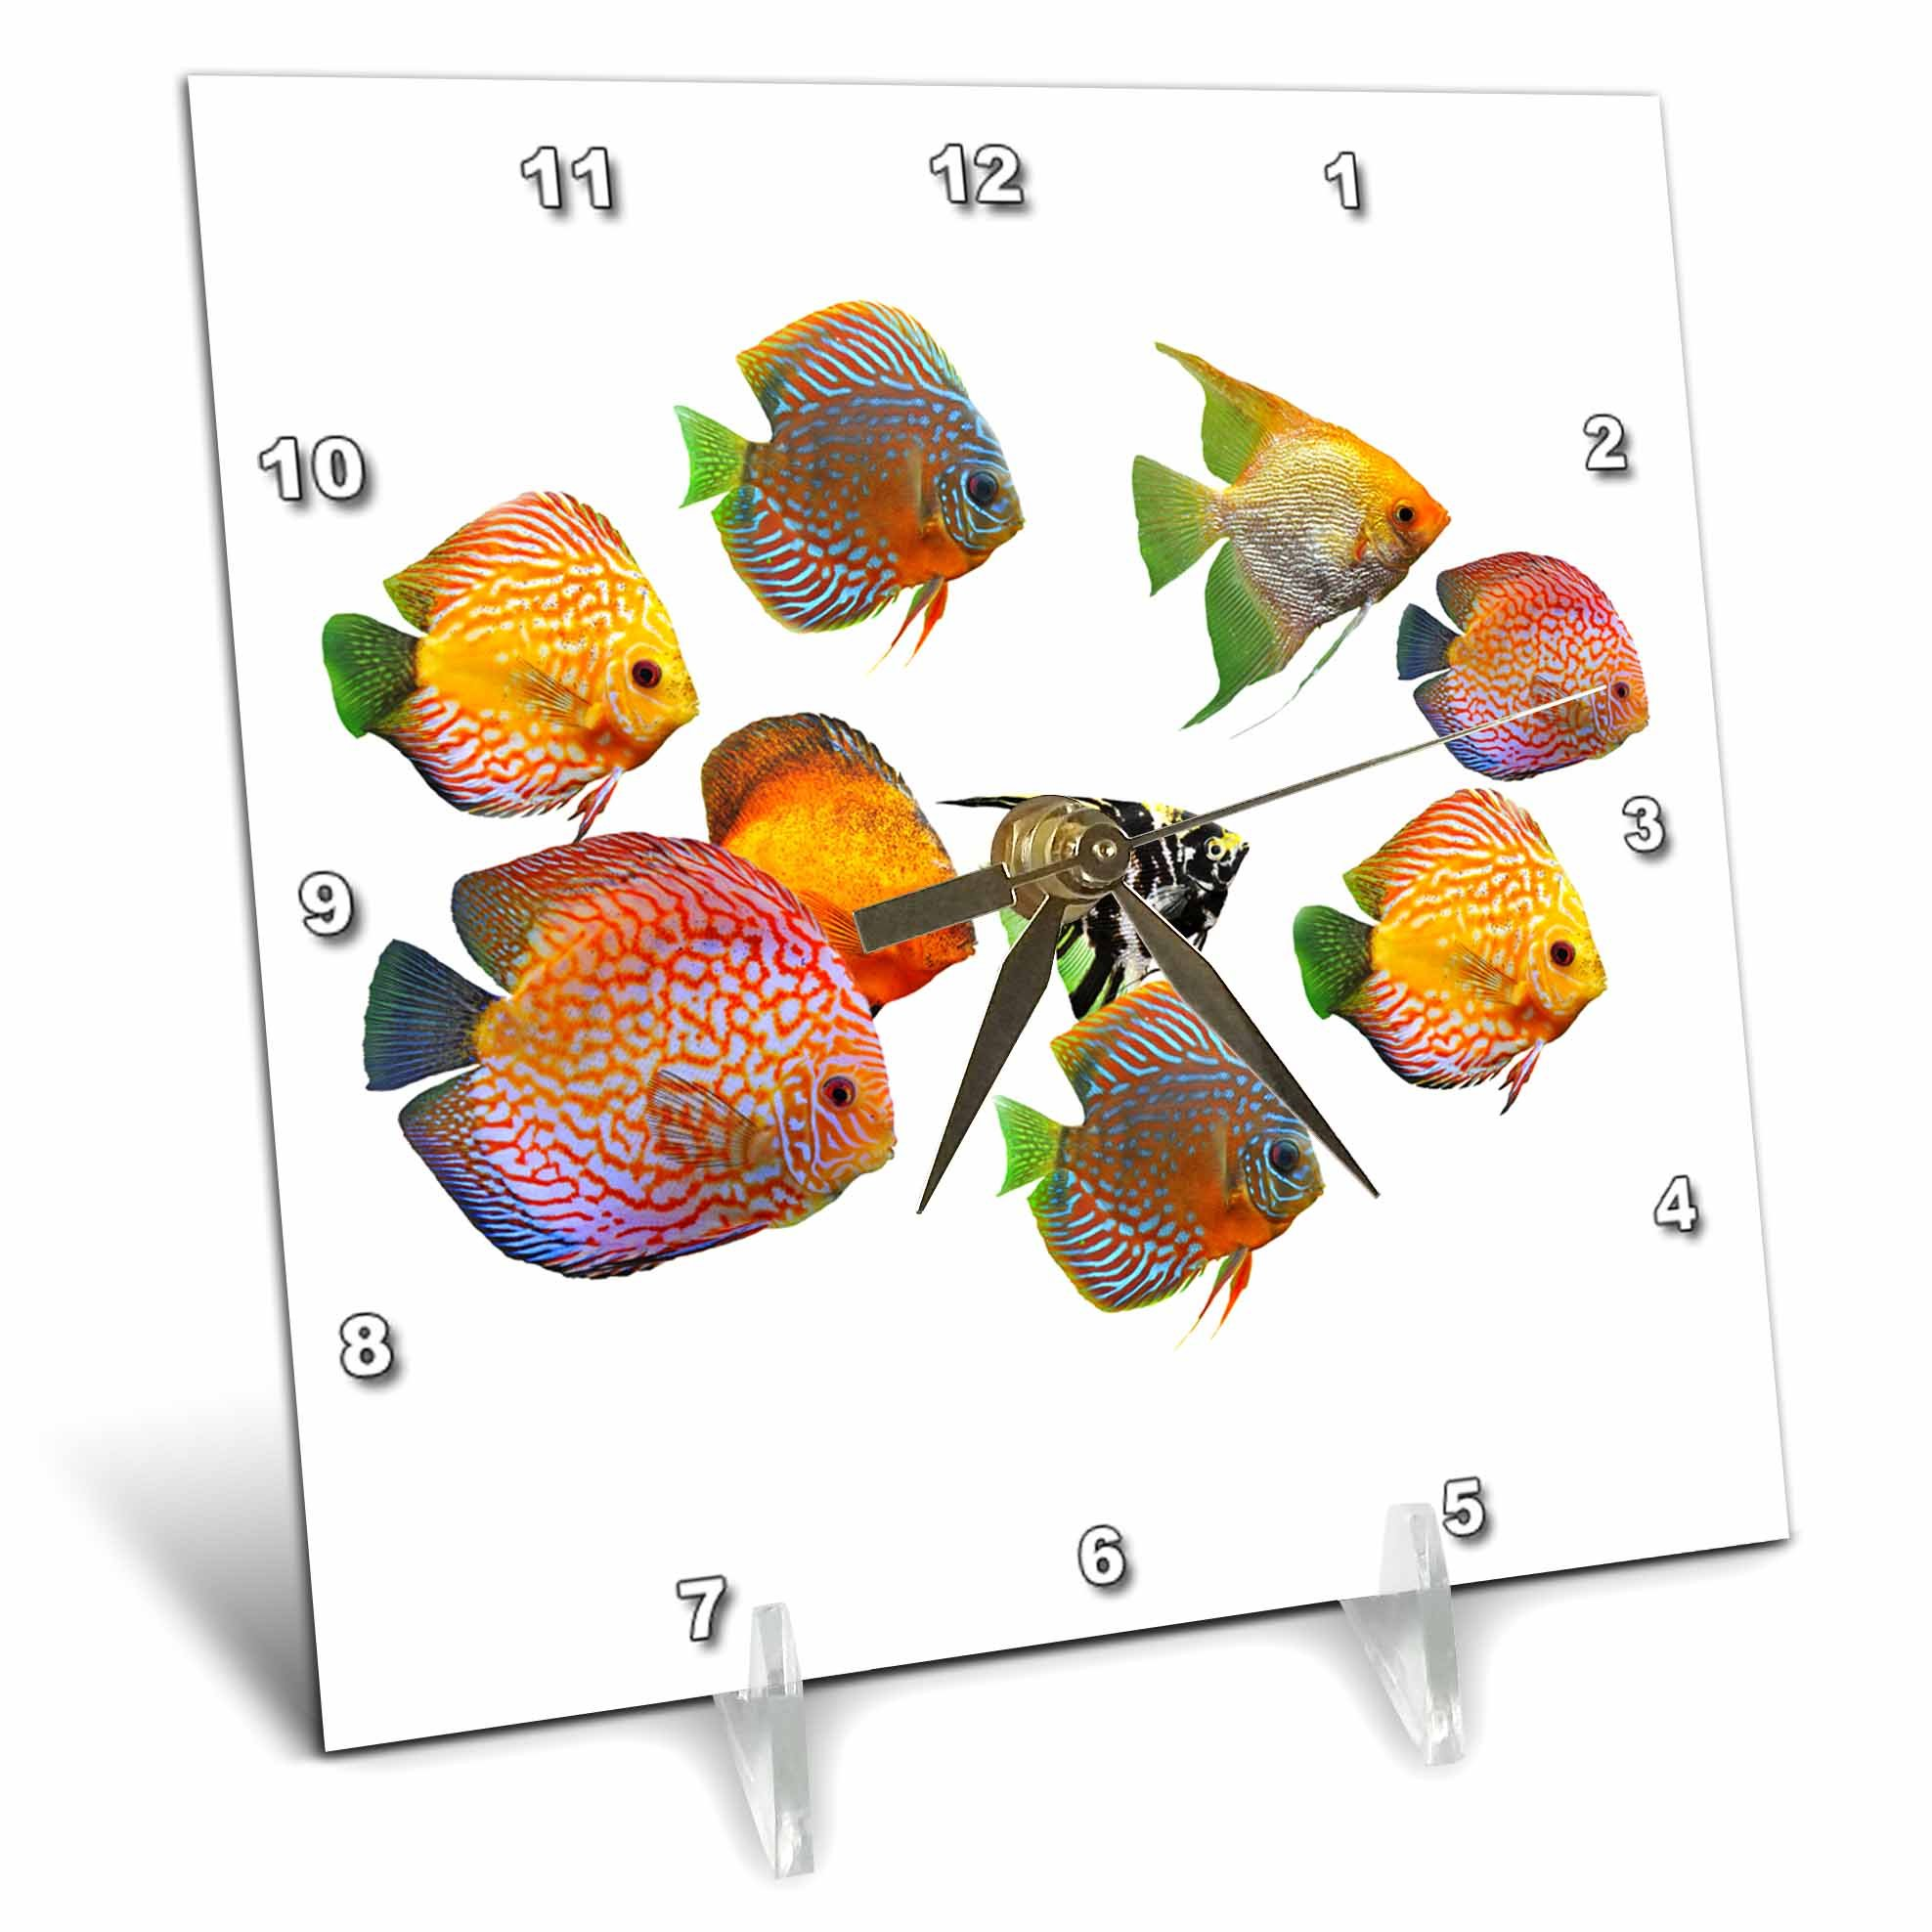 3dRose Sven Herkenrath Animal - A Swarm Colorful Discus Fishes on Empty White Background - 6x6 Desk Clock (dc_280387_1)